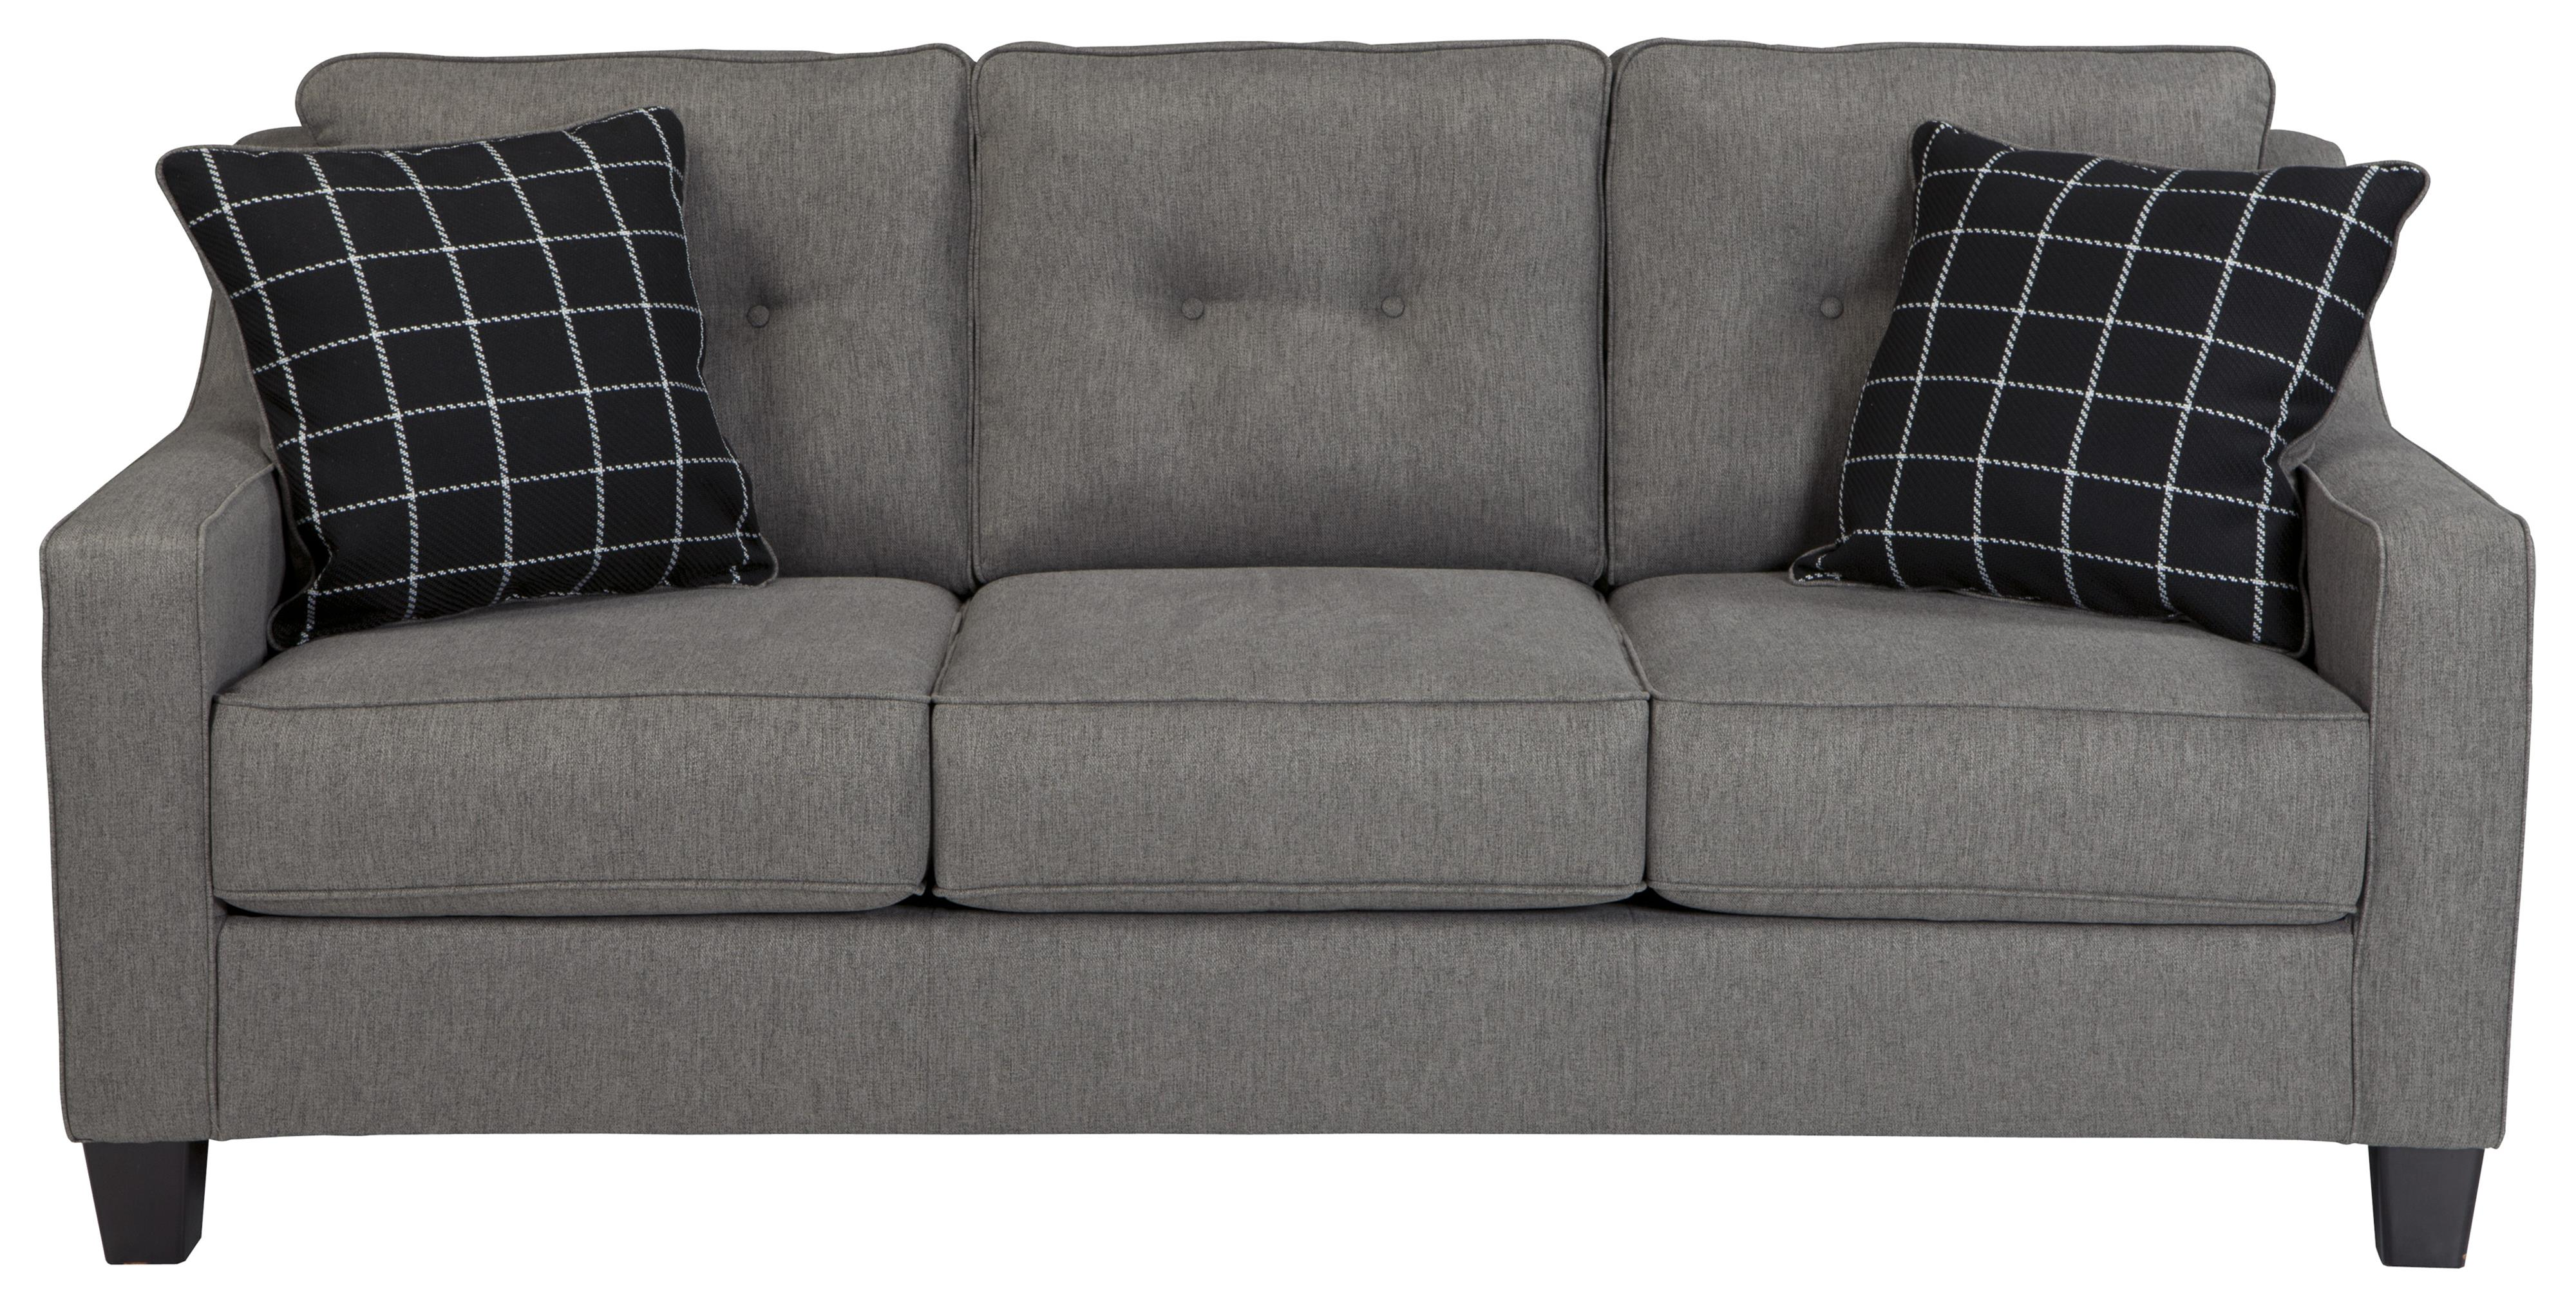 Benchcraft Brindon Contemporary Sofa With Track Arms